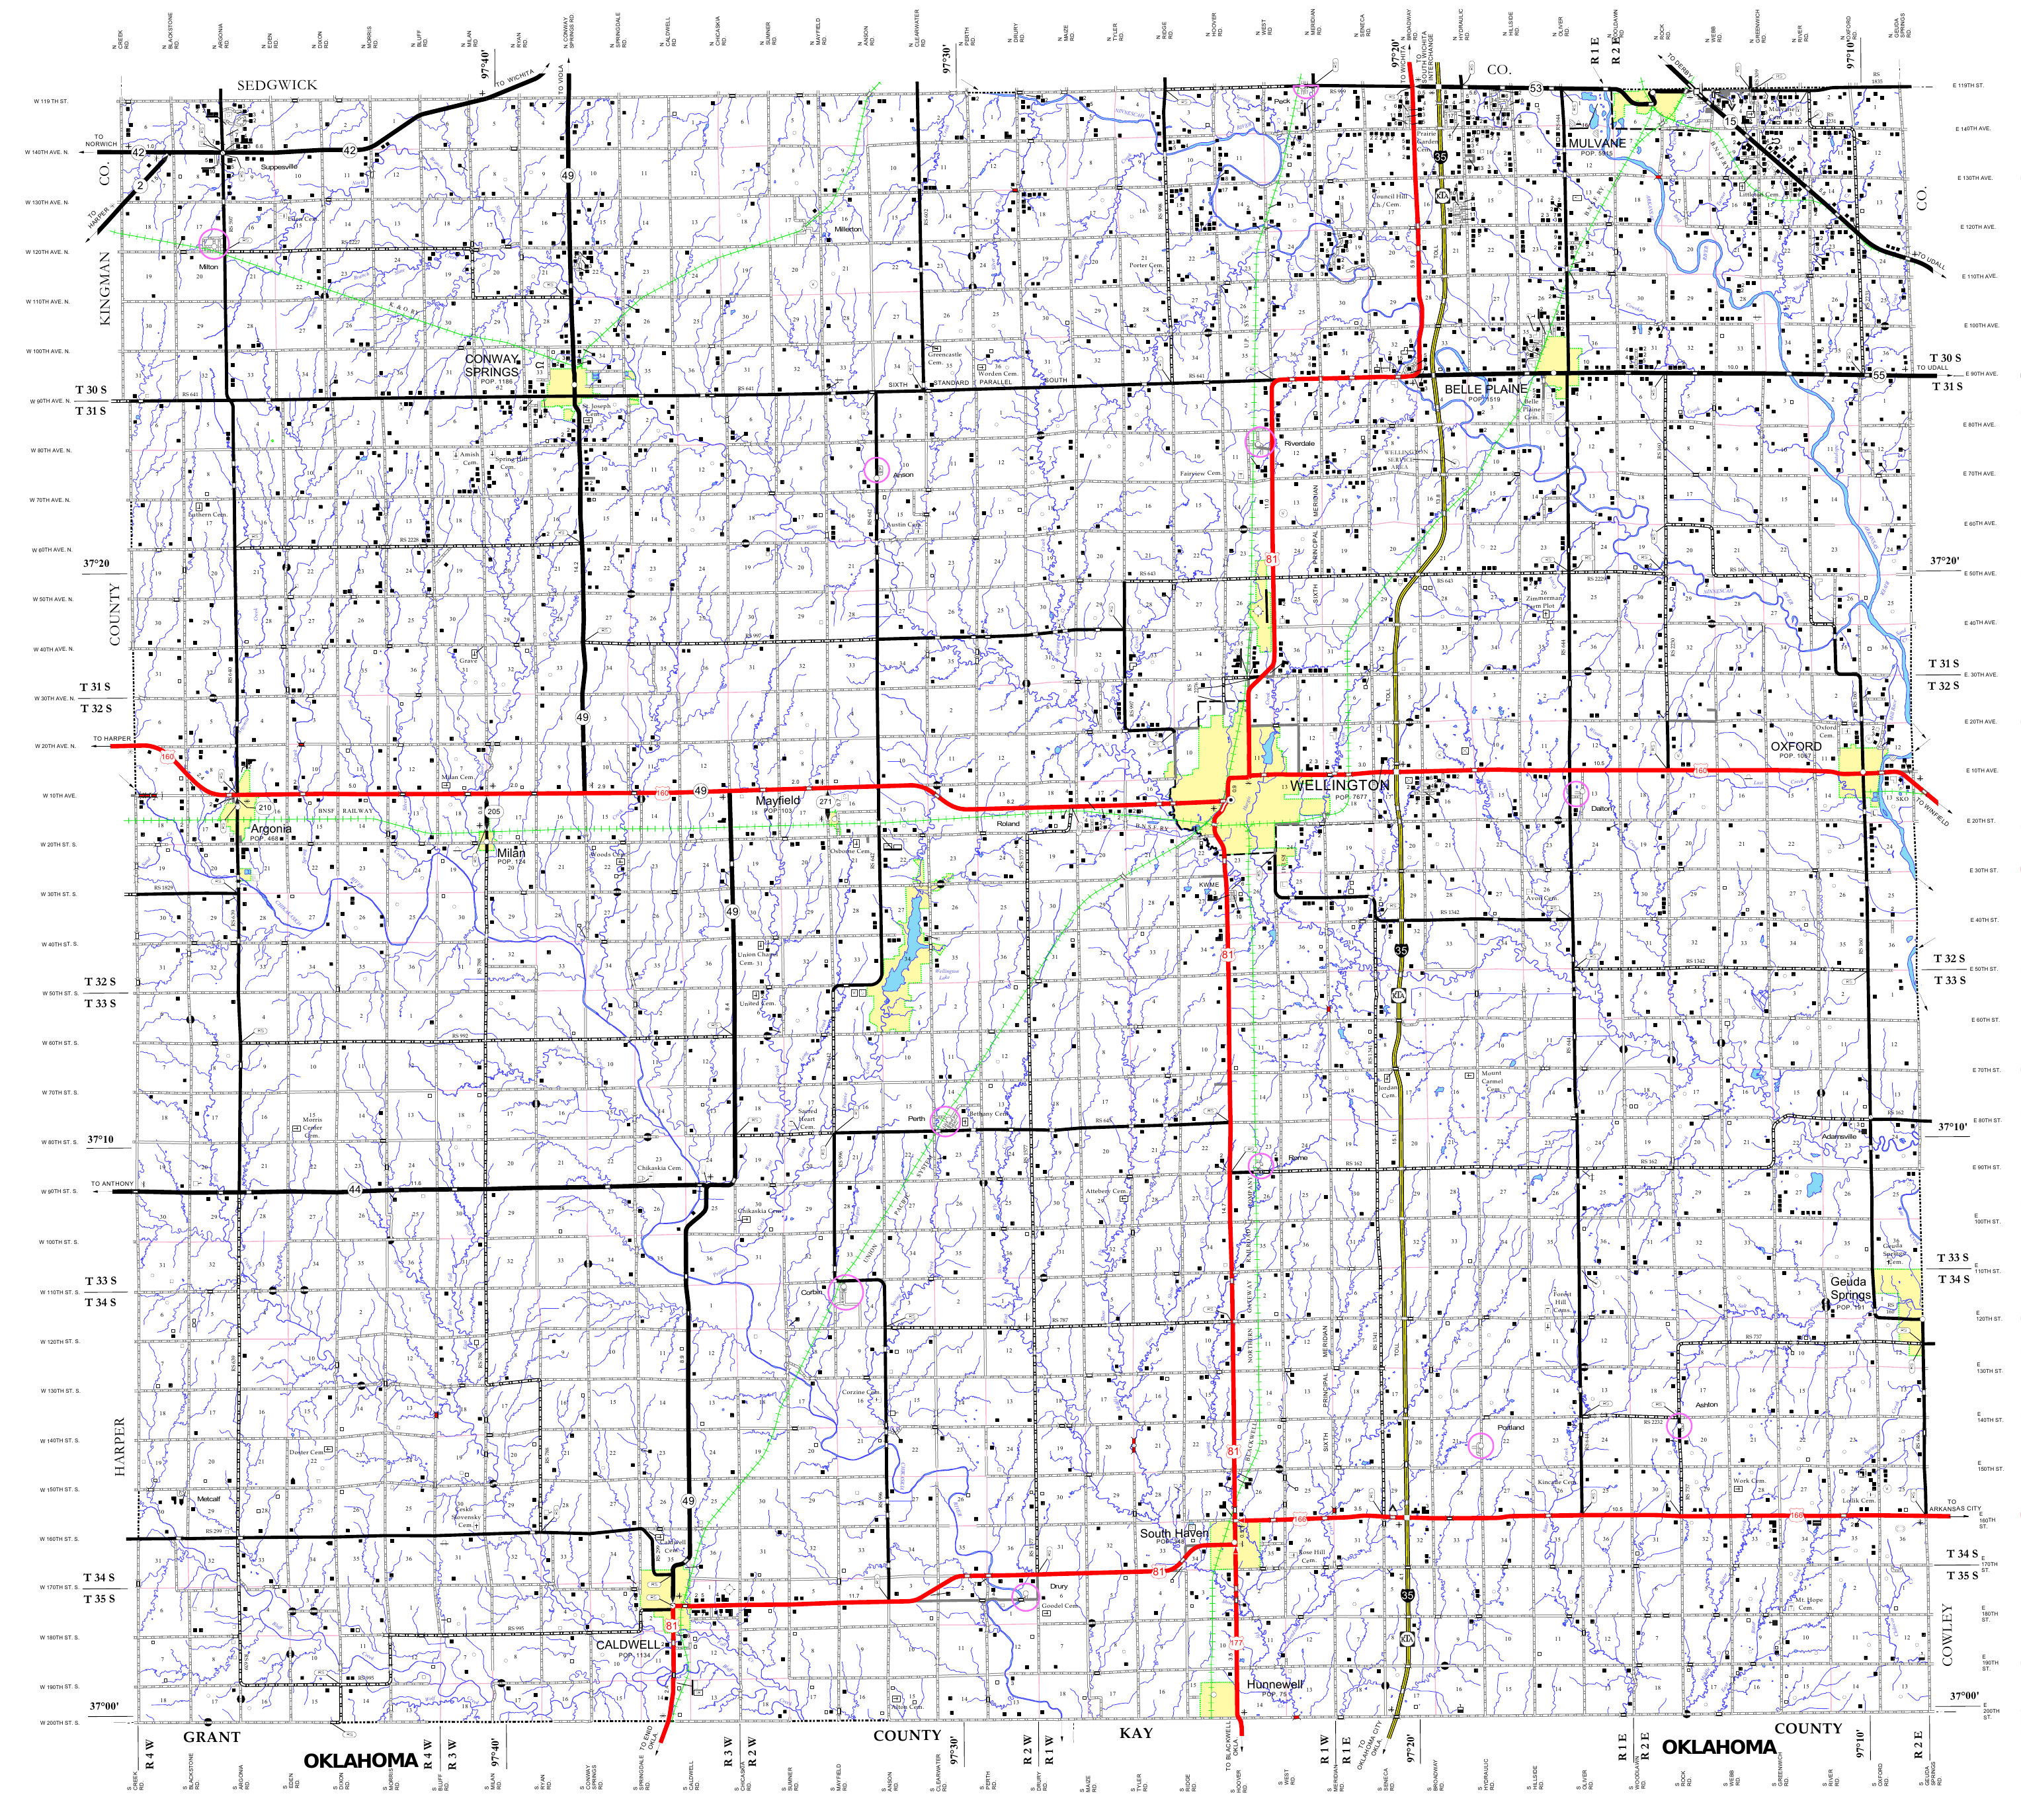 Sumner County Trails To The Past on highway 666 new mexico maps, kansas hwy maps, motorcycle road trip maps, kansas roadway maps, kansas street maps, kansas highway atlas, kansas county map printable, kansas county atlases, kansas road map with counties, kansas state road maps,